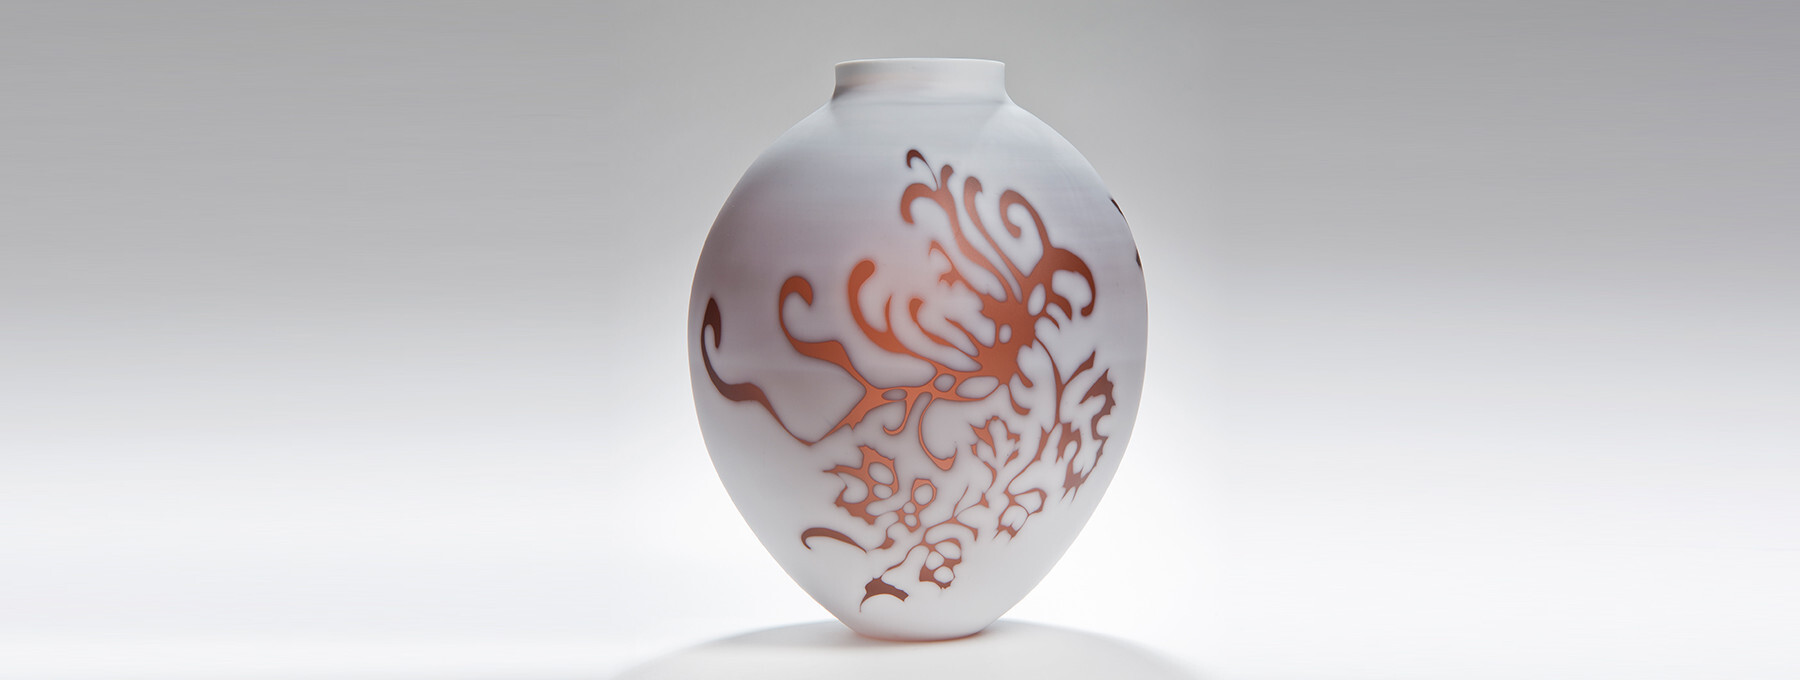 Plum Vessel Cover 1800×680